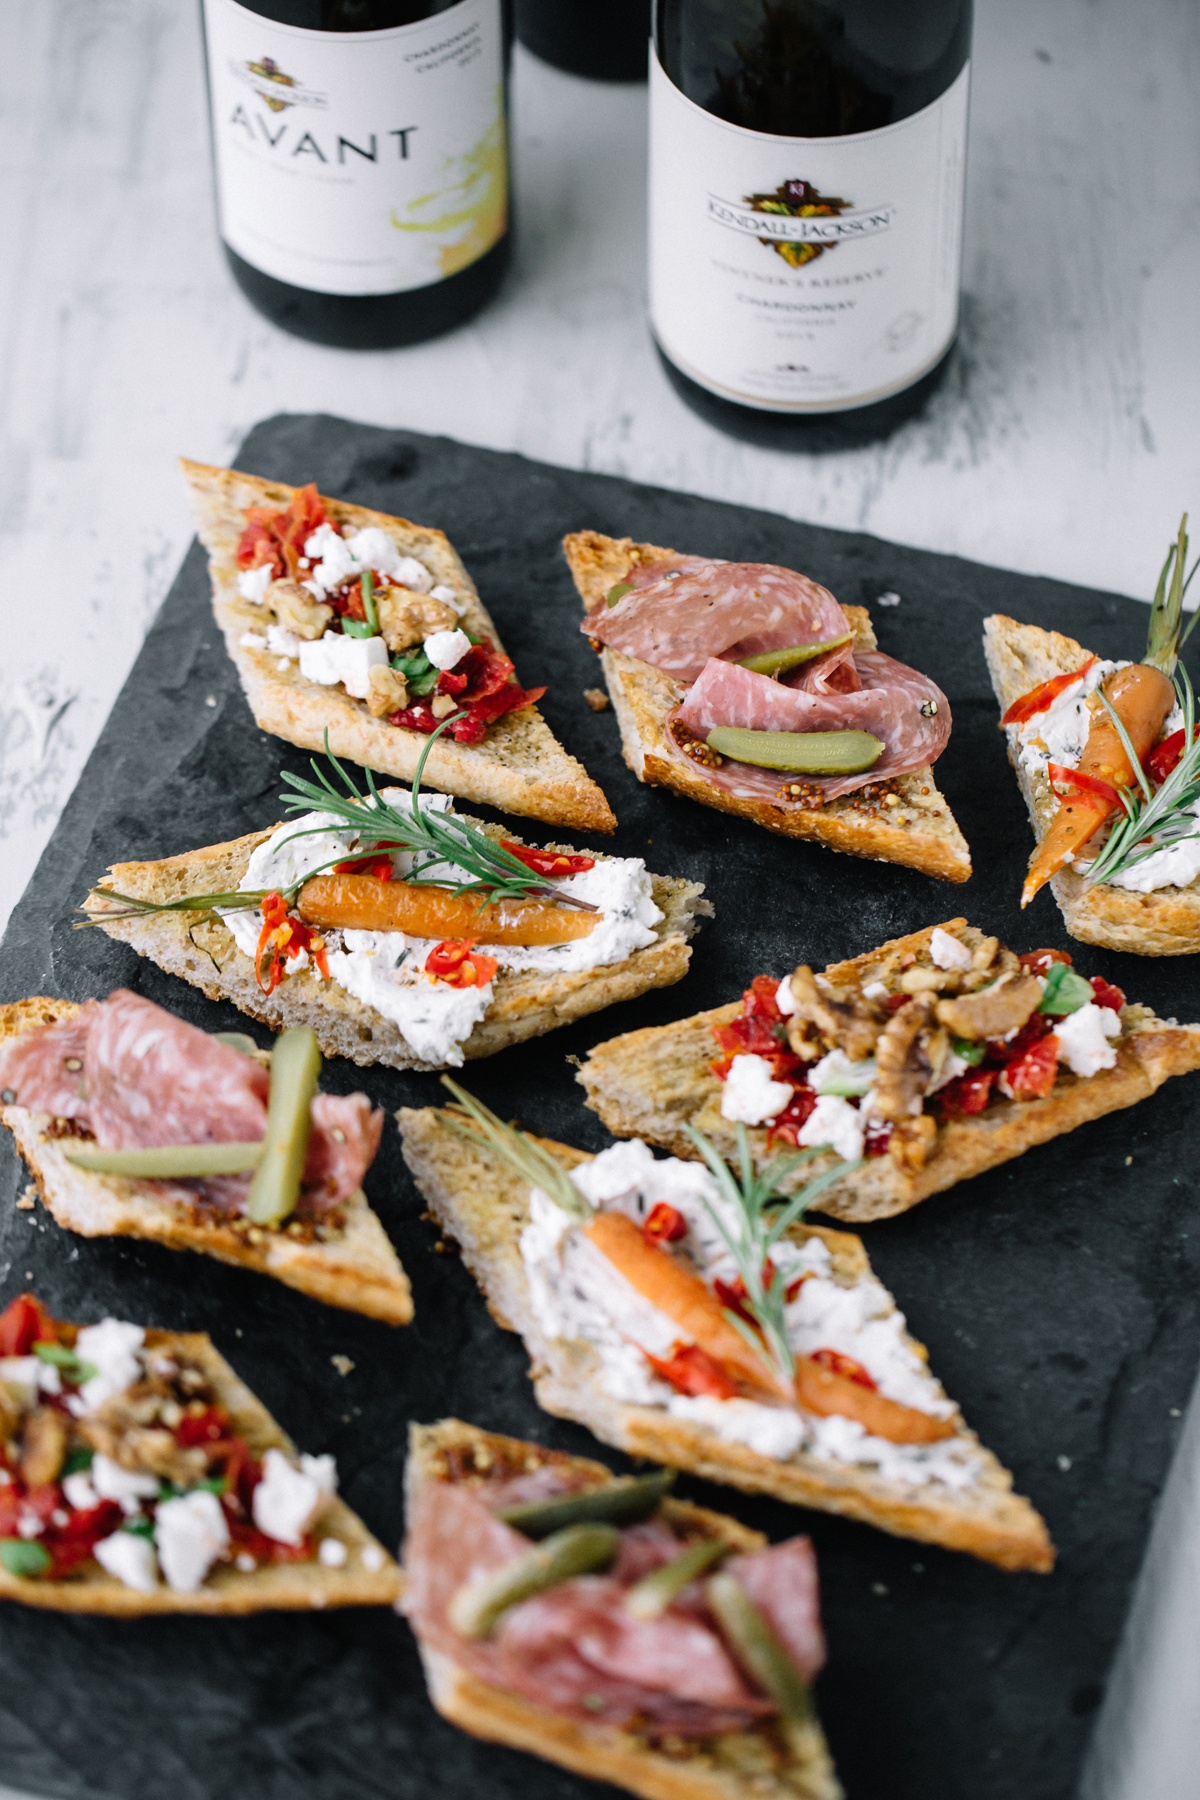 When you are hosting a soirée the last thing you want to do is spend time making sure everyone's eating, instead you actually want to spend time enjoying your friends' company, so I have the perfect solution for ya, an oldie but goodie: a crostini party s